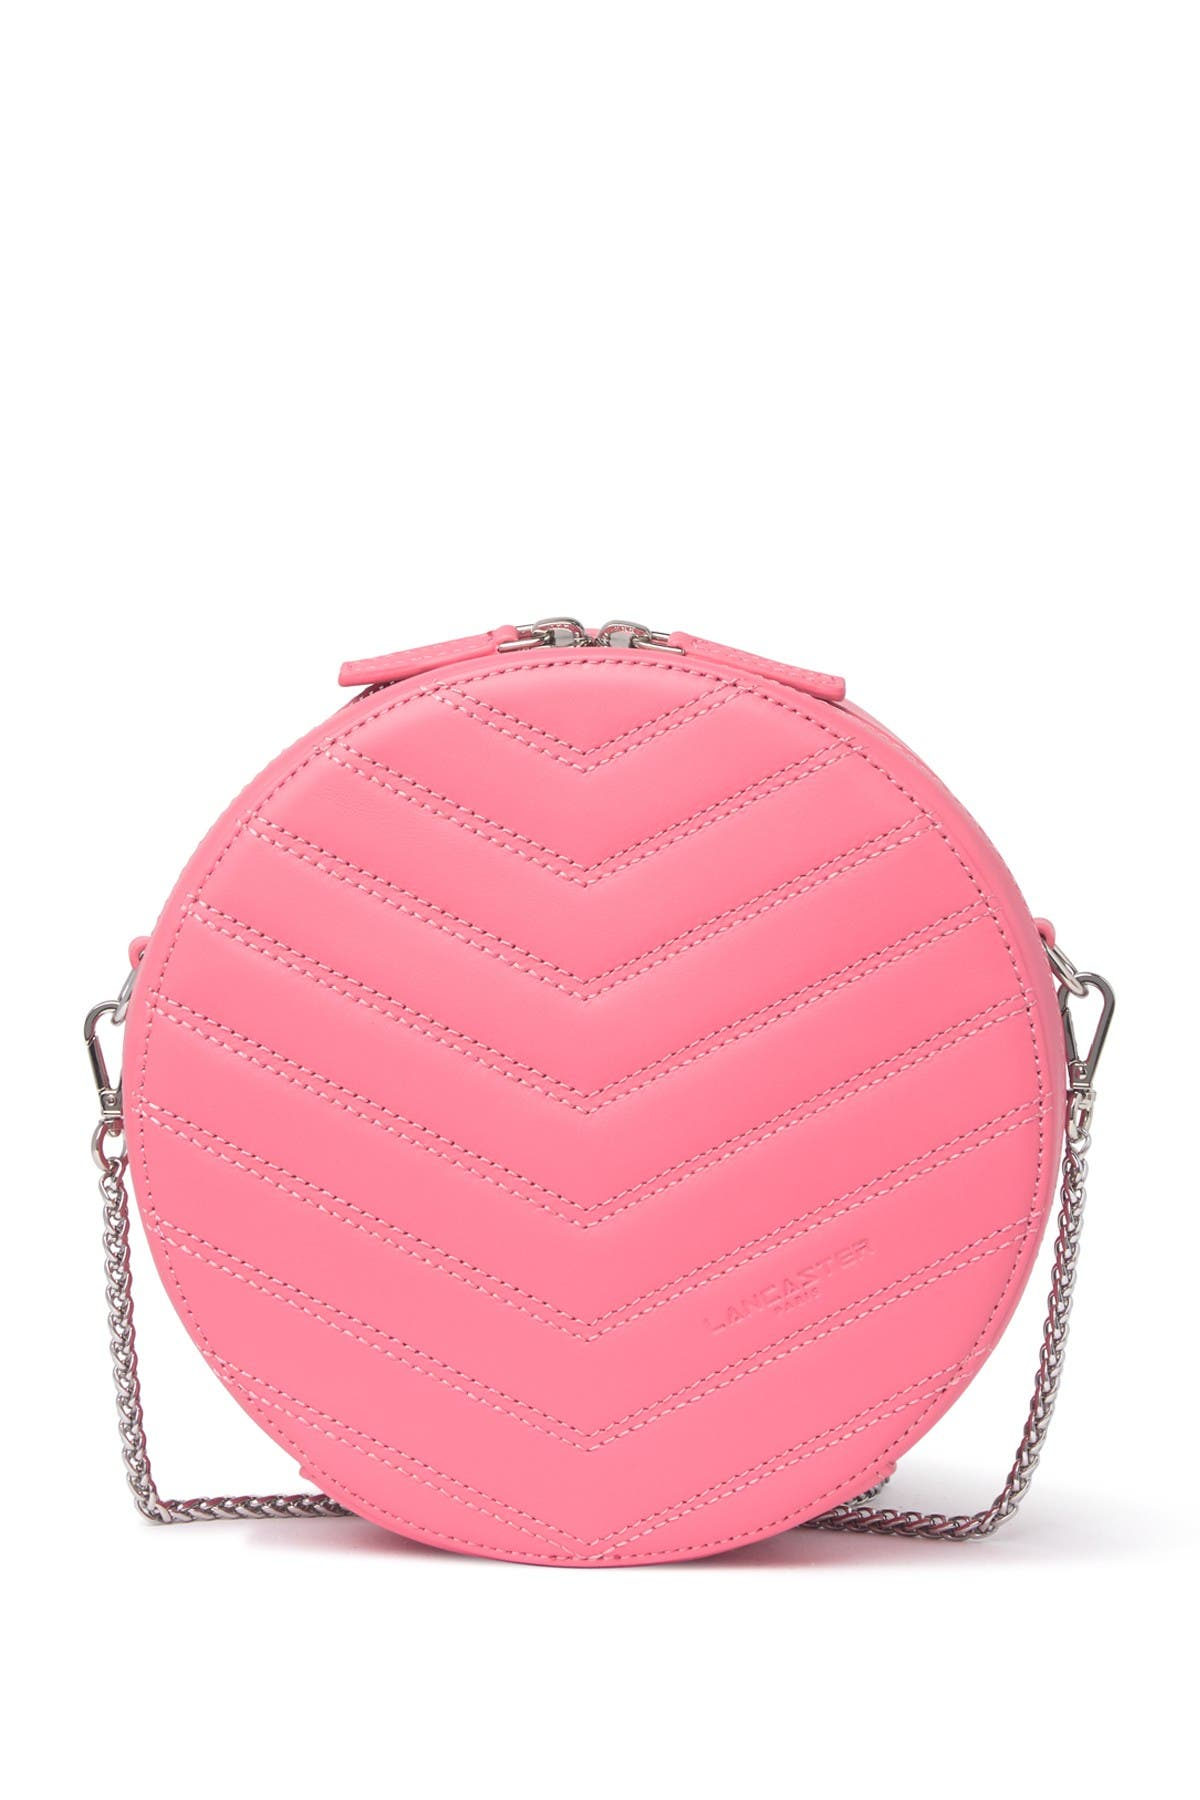 Image of Lancaster Paris Small Round Quilted Leather Crossbody Bag